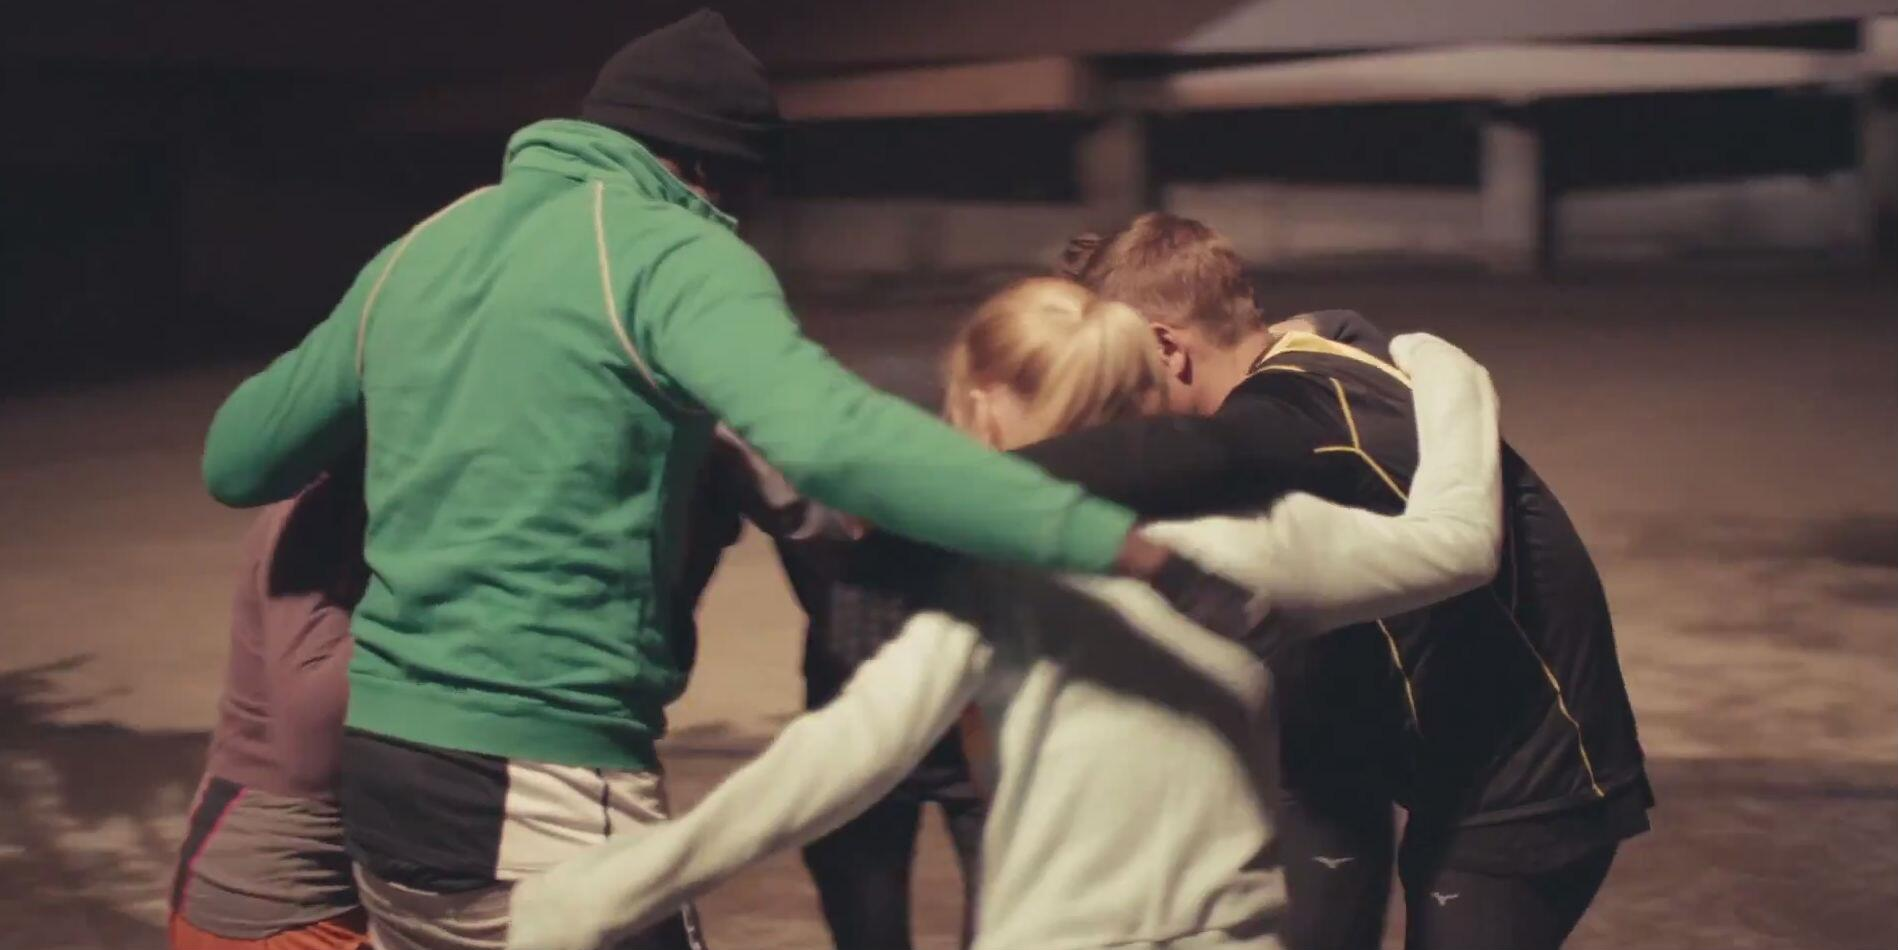 Watch the Spot: Mizuno Running ties its first TV ad to the Boston Marathon http://t.co/YIwEbW8h6e http://t.co/6nQOBF1Hj4